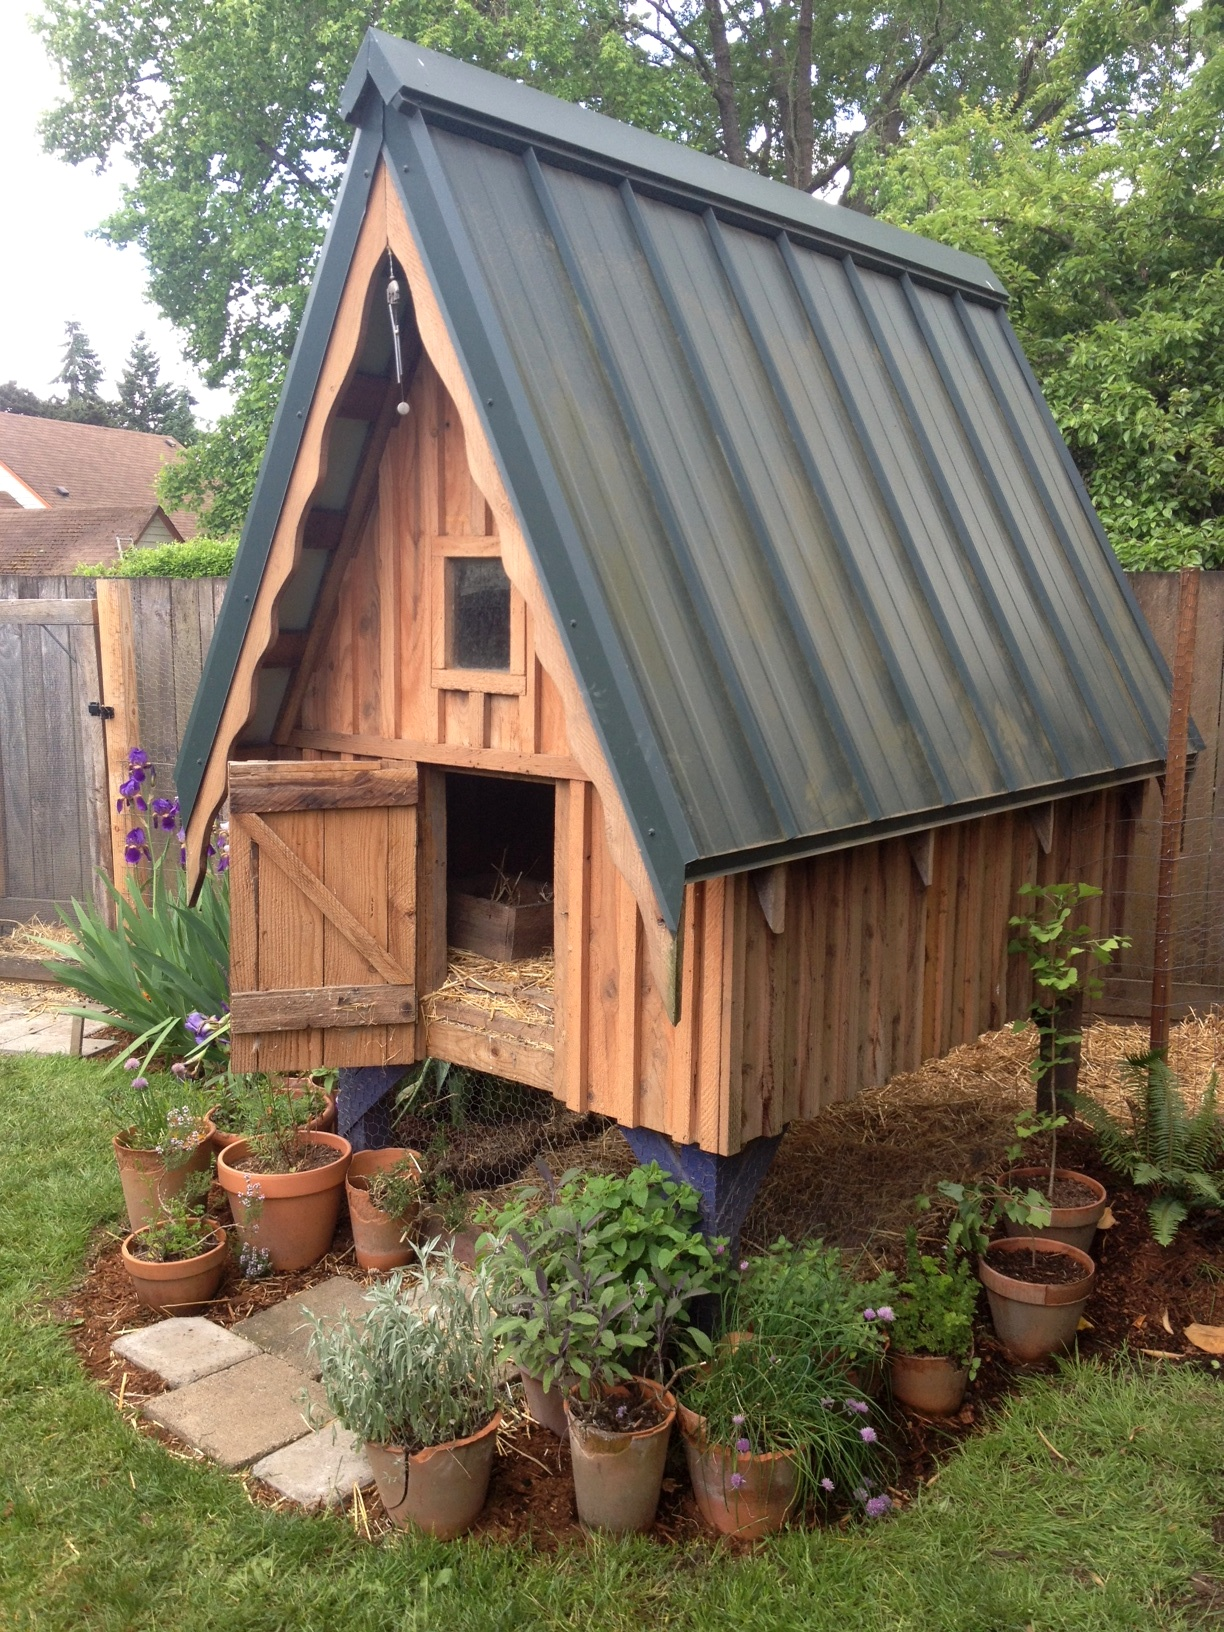 coops be crazy chicken abodes inspire creativity and